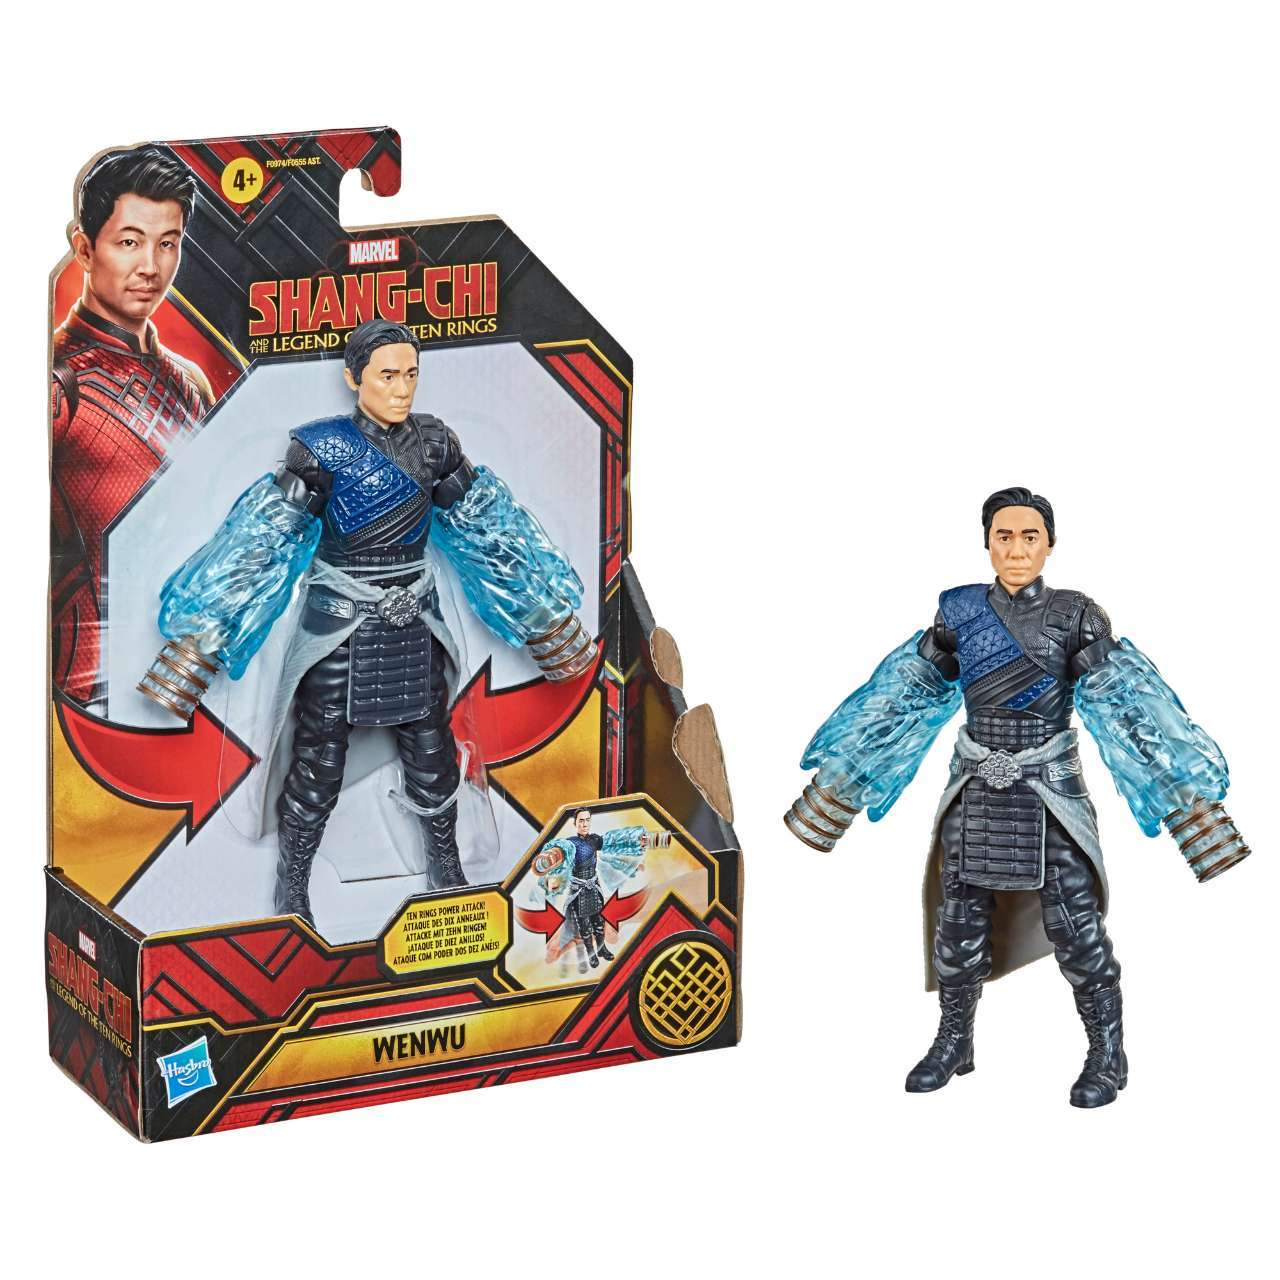 MARVEL SHANG-CHI AND THE LEGEND OF THE TEN RINGS 6-INCH WENWU Figure - oop (2)